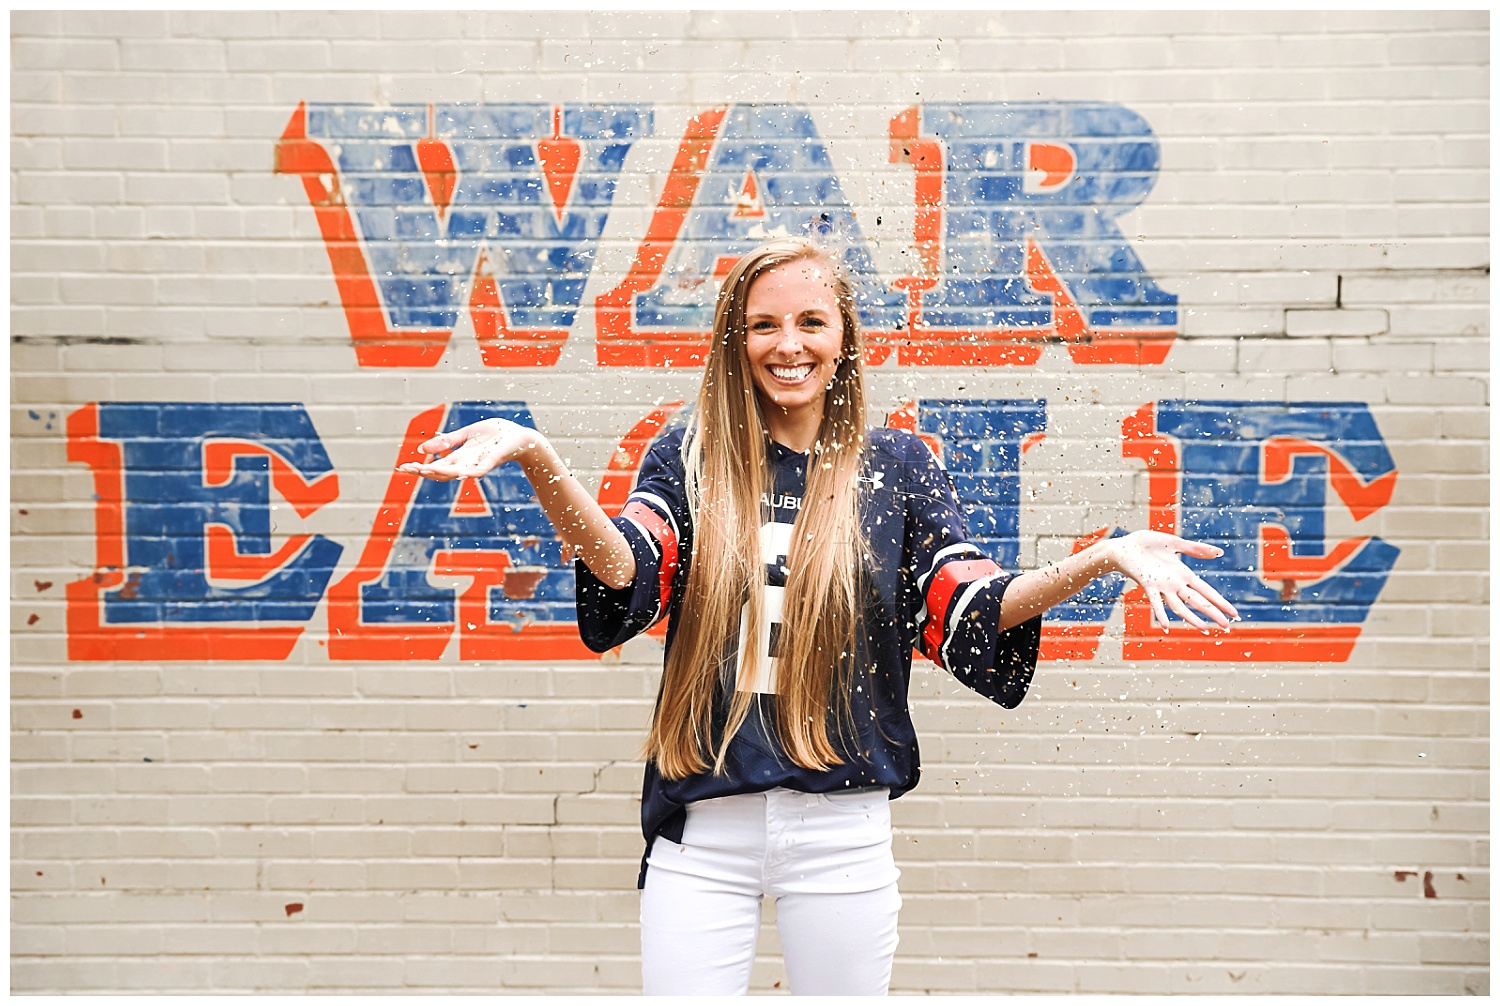 war eagle wall confetti auburn university graduation photos lbeesleyphoto